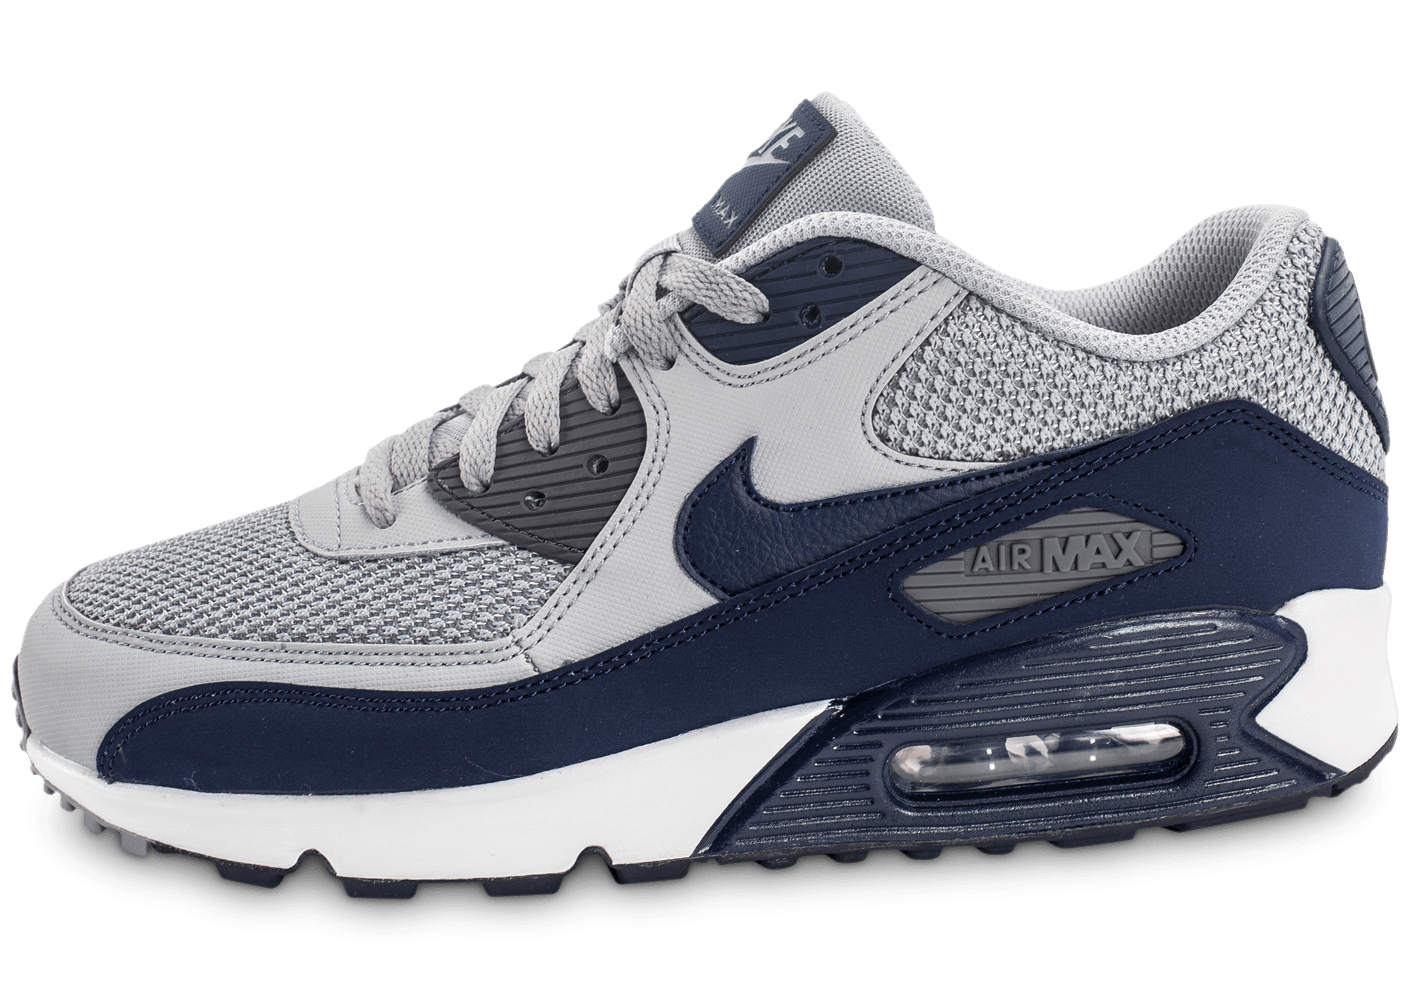 nike air max 90 essential grise et bleue chaussures homme chausport. Black Bedroom Furniture Sets. Home Design Ideas